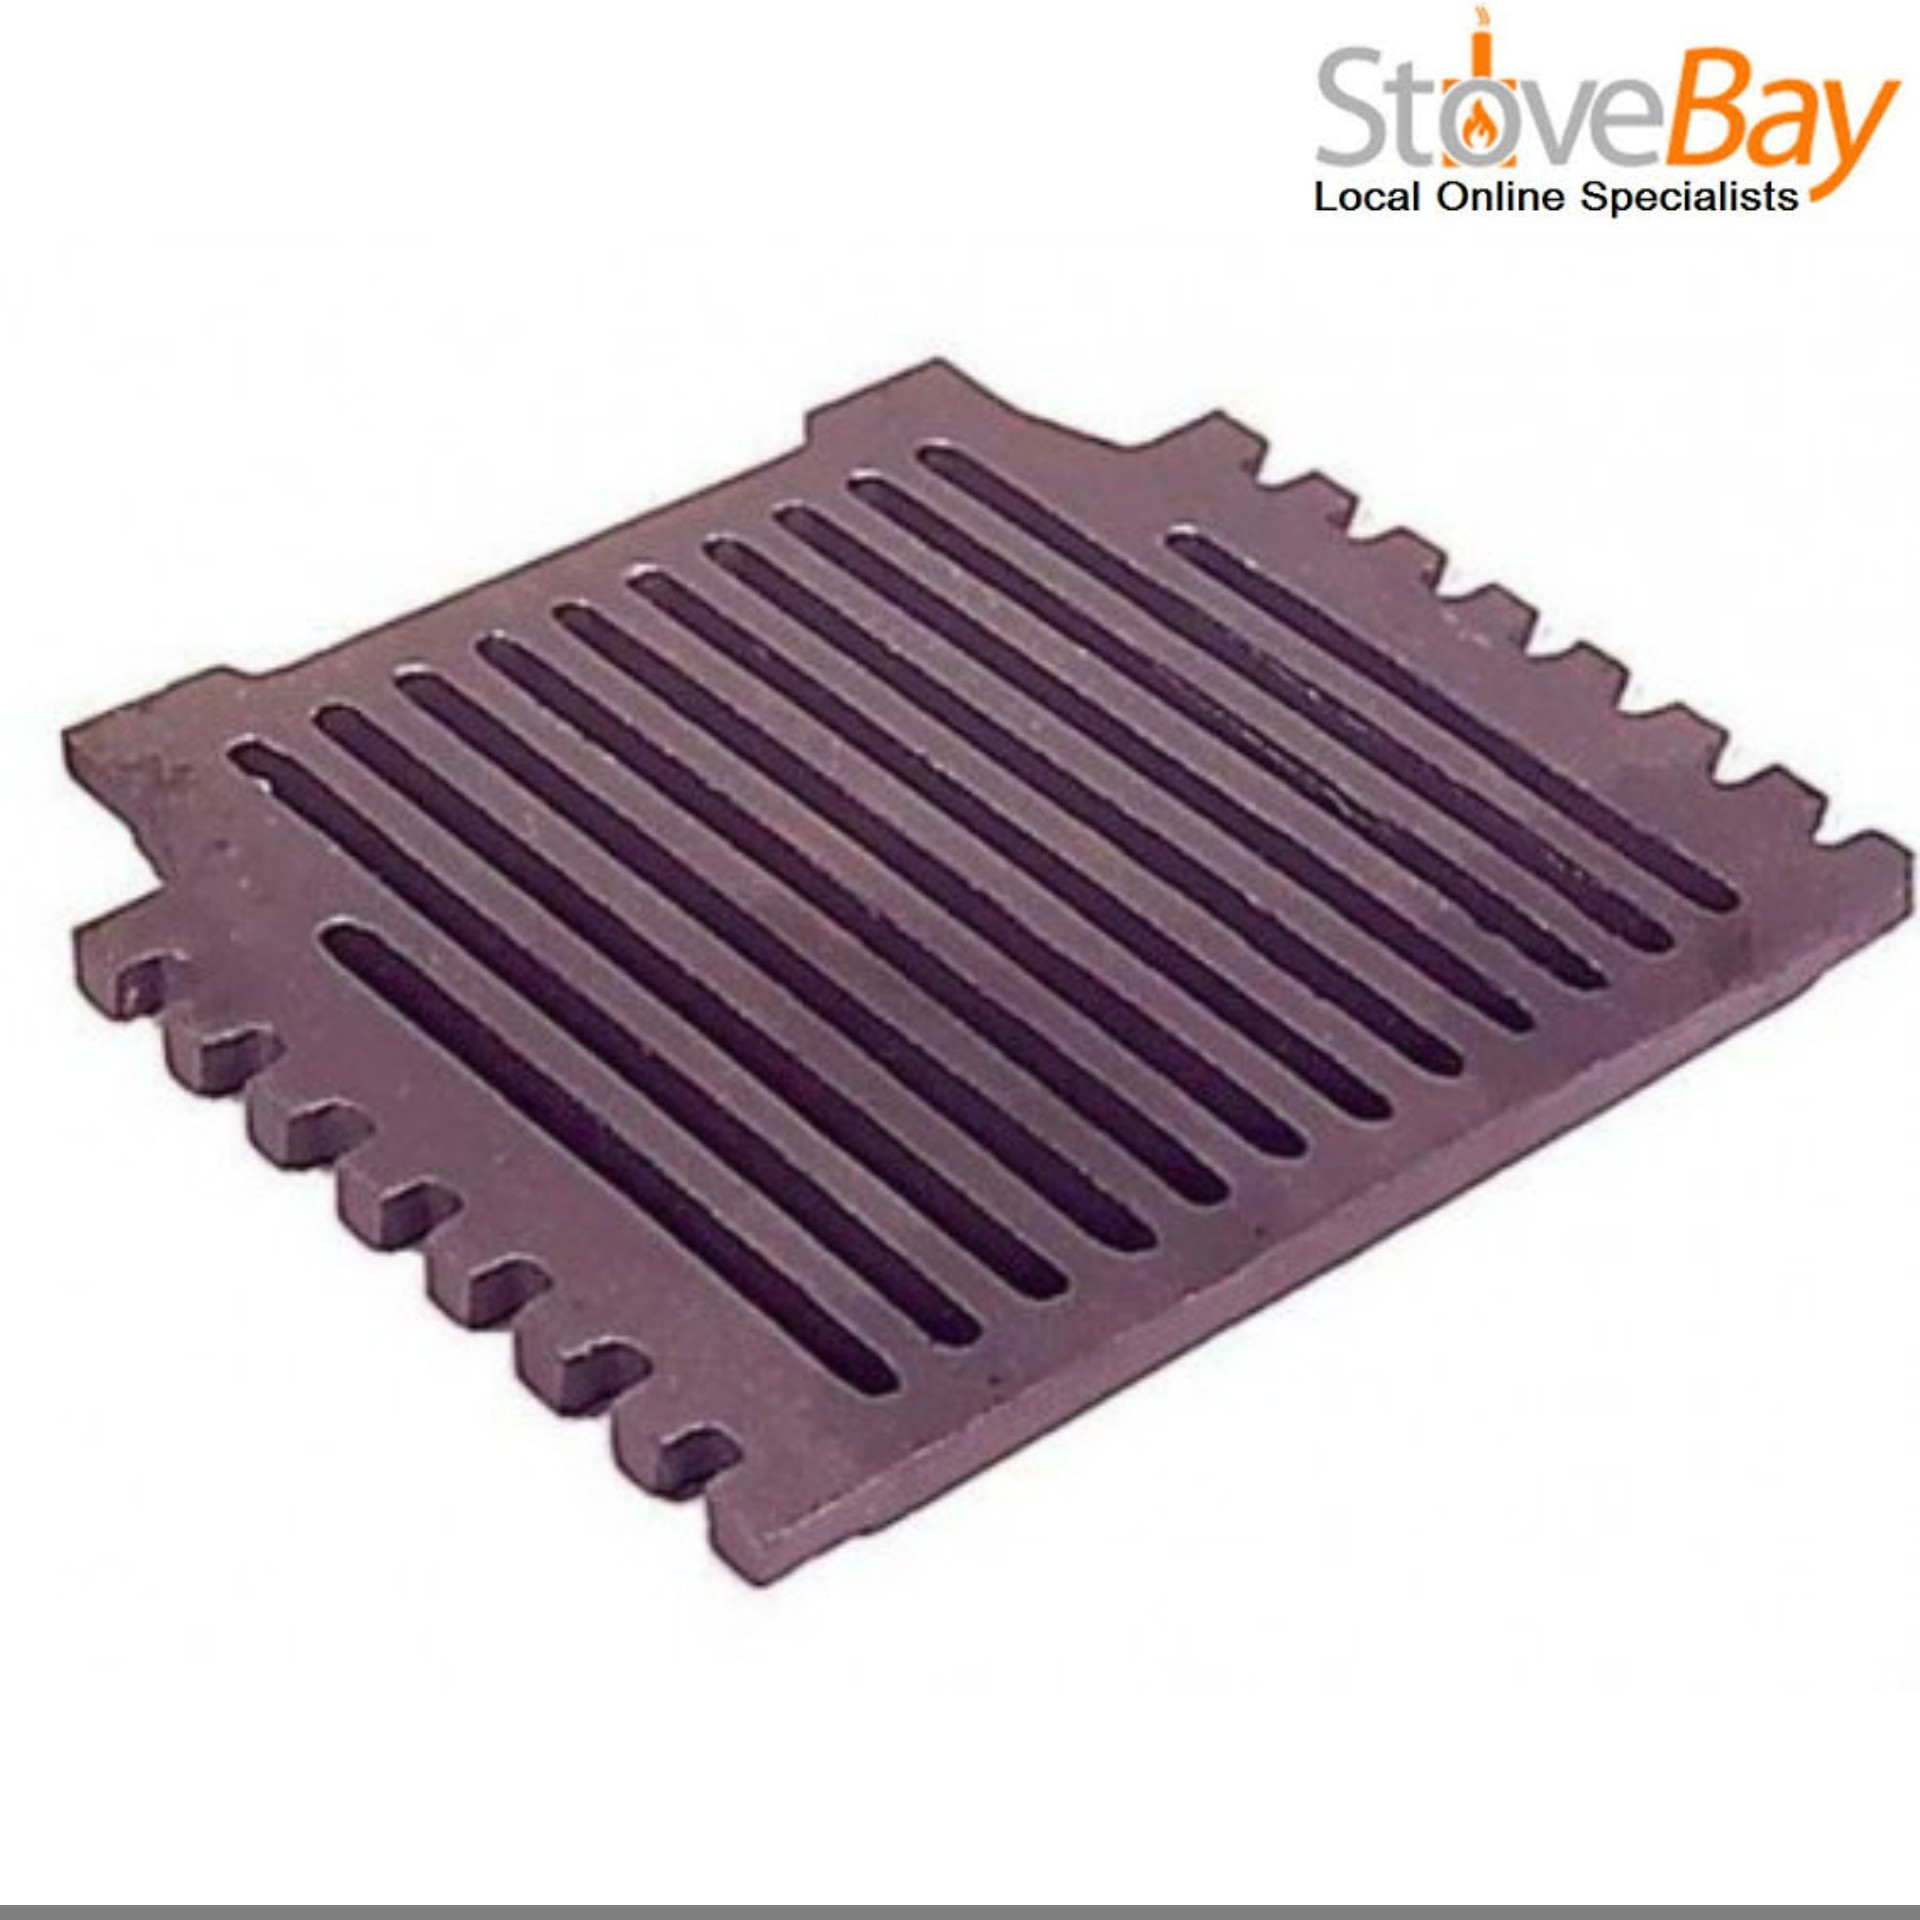 18 Inch Fireplace Grate Details About 18 Inch Grant Triple Pass Cast Iron Flat Bottom Fire Grate